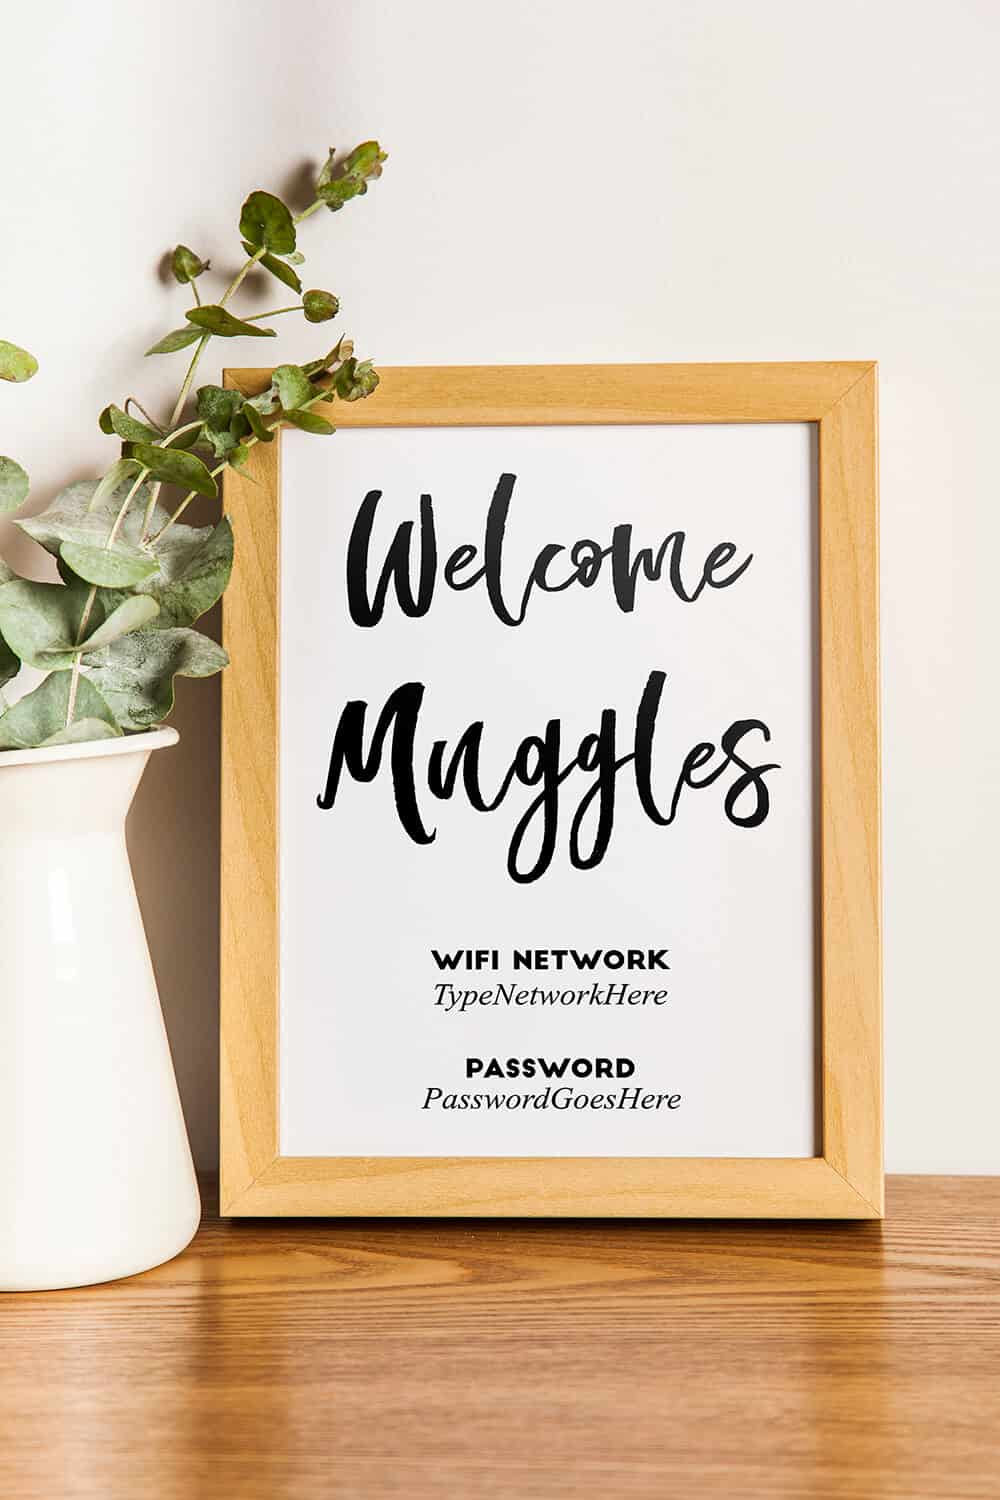 picture regarding Wifi Password Sign Printable referred to as Welcome Muggles\